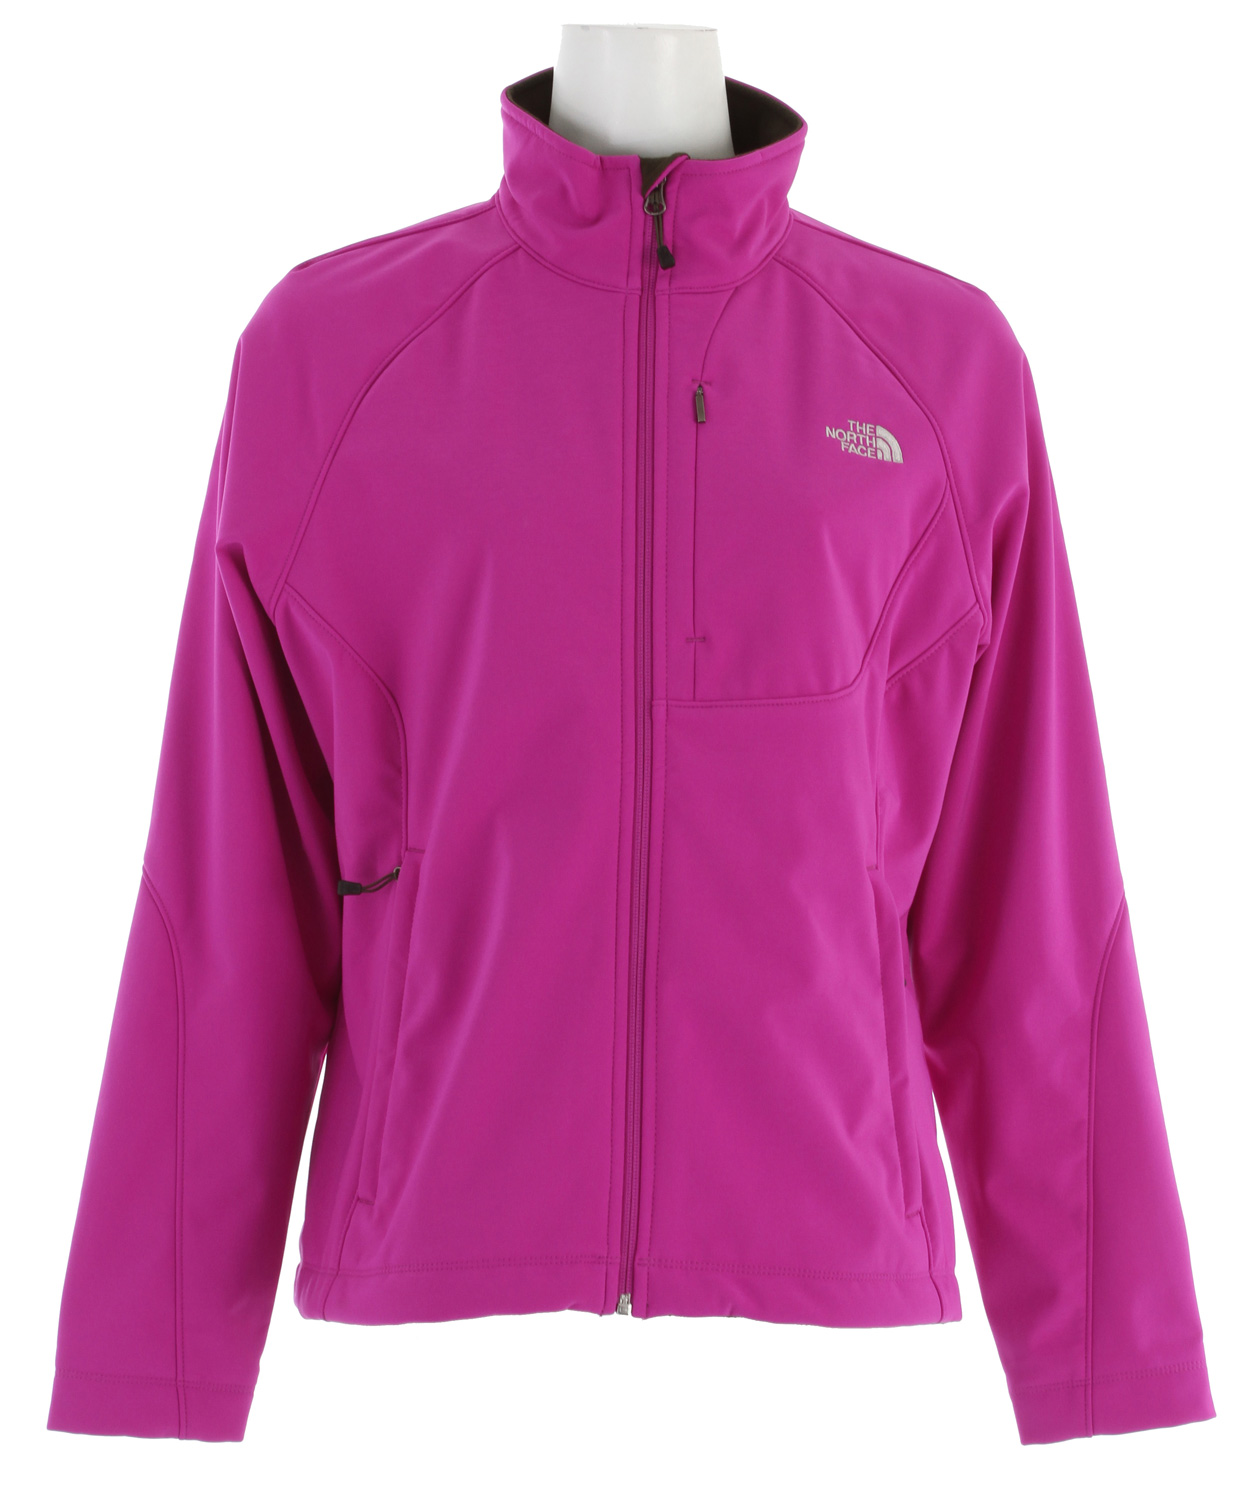 Versatile and widely worn soft shell has enhanced windproof features and a stretchy, comfortable fit; ideal for multiple activities.Key Features of The North Face Apex Bionic Jacket: Standard fit TNF® Apex ClimateBlock fabric wind permeability rated at 0 CFM Fleece backer Napoleon chest pocket Two hand pockets Internal stretch comfort cuffs - $103.95